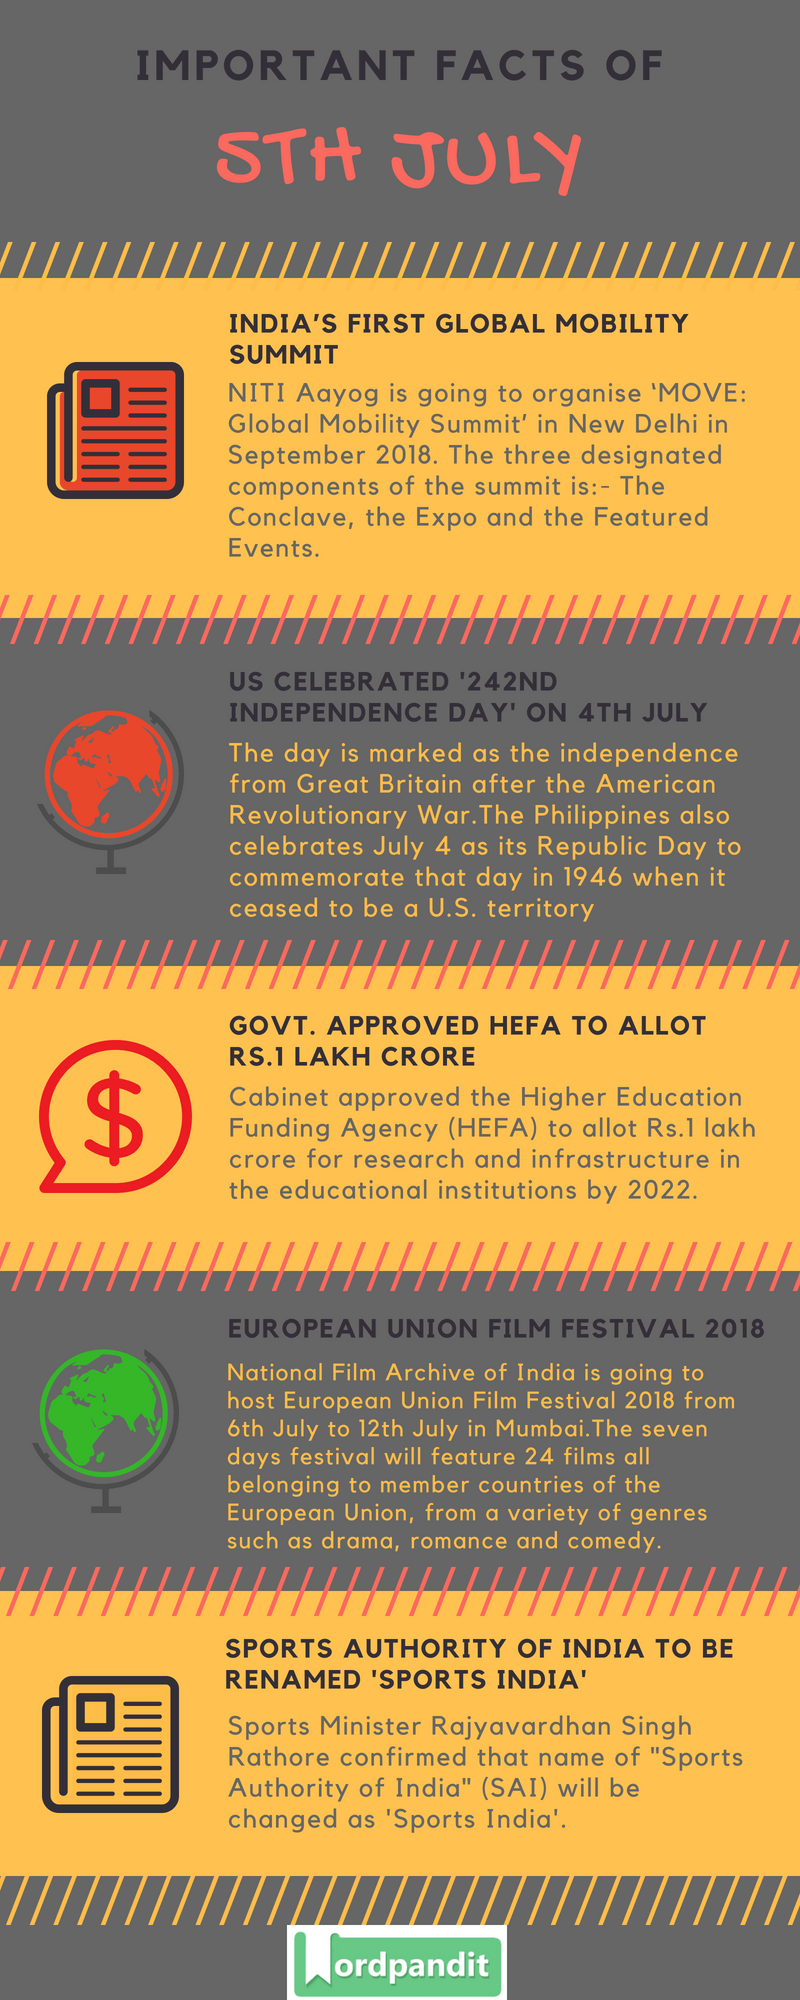 Daily Current Affairs 5 July 2018 Current Affairs Quiz July 5 2018 Current Affairs Infographic